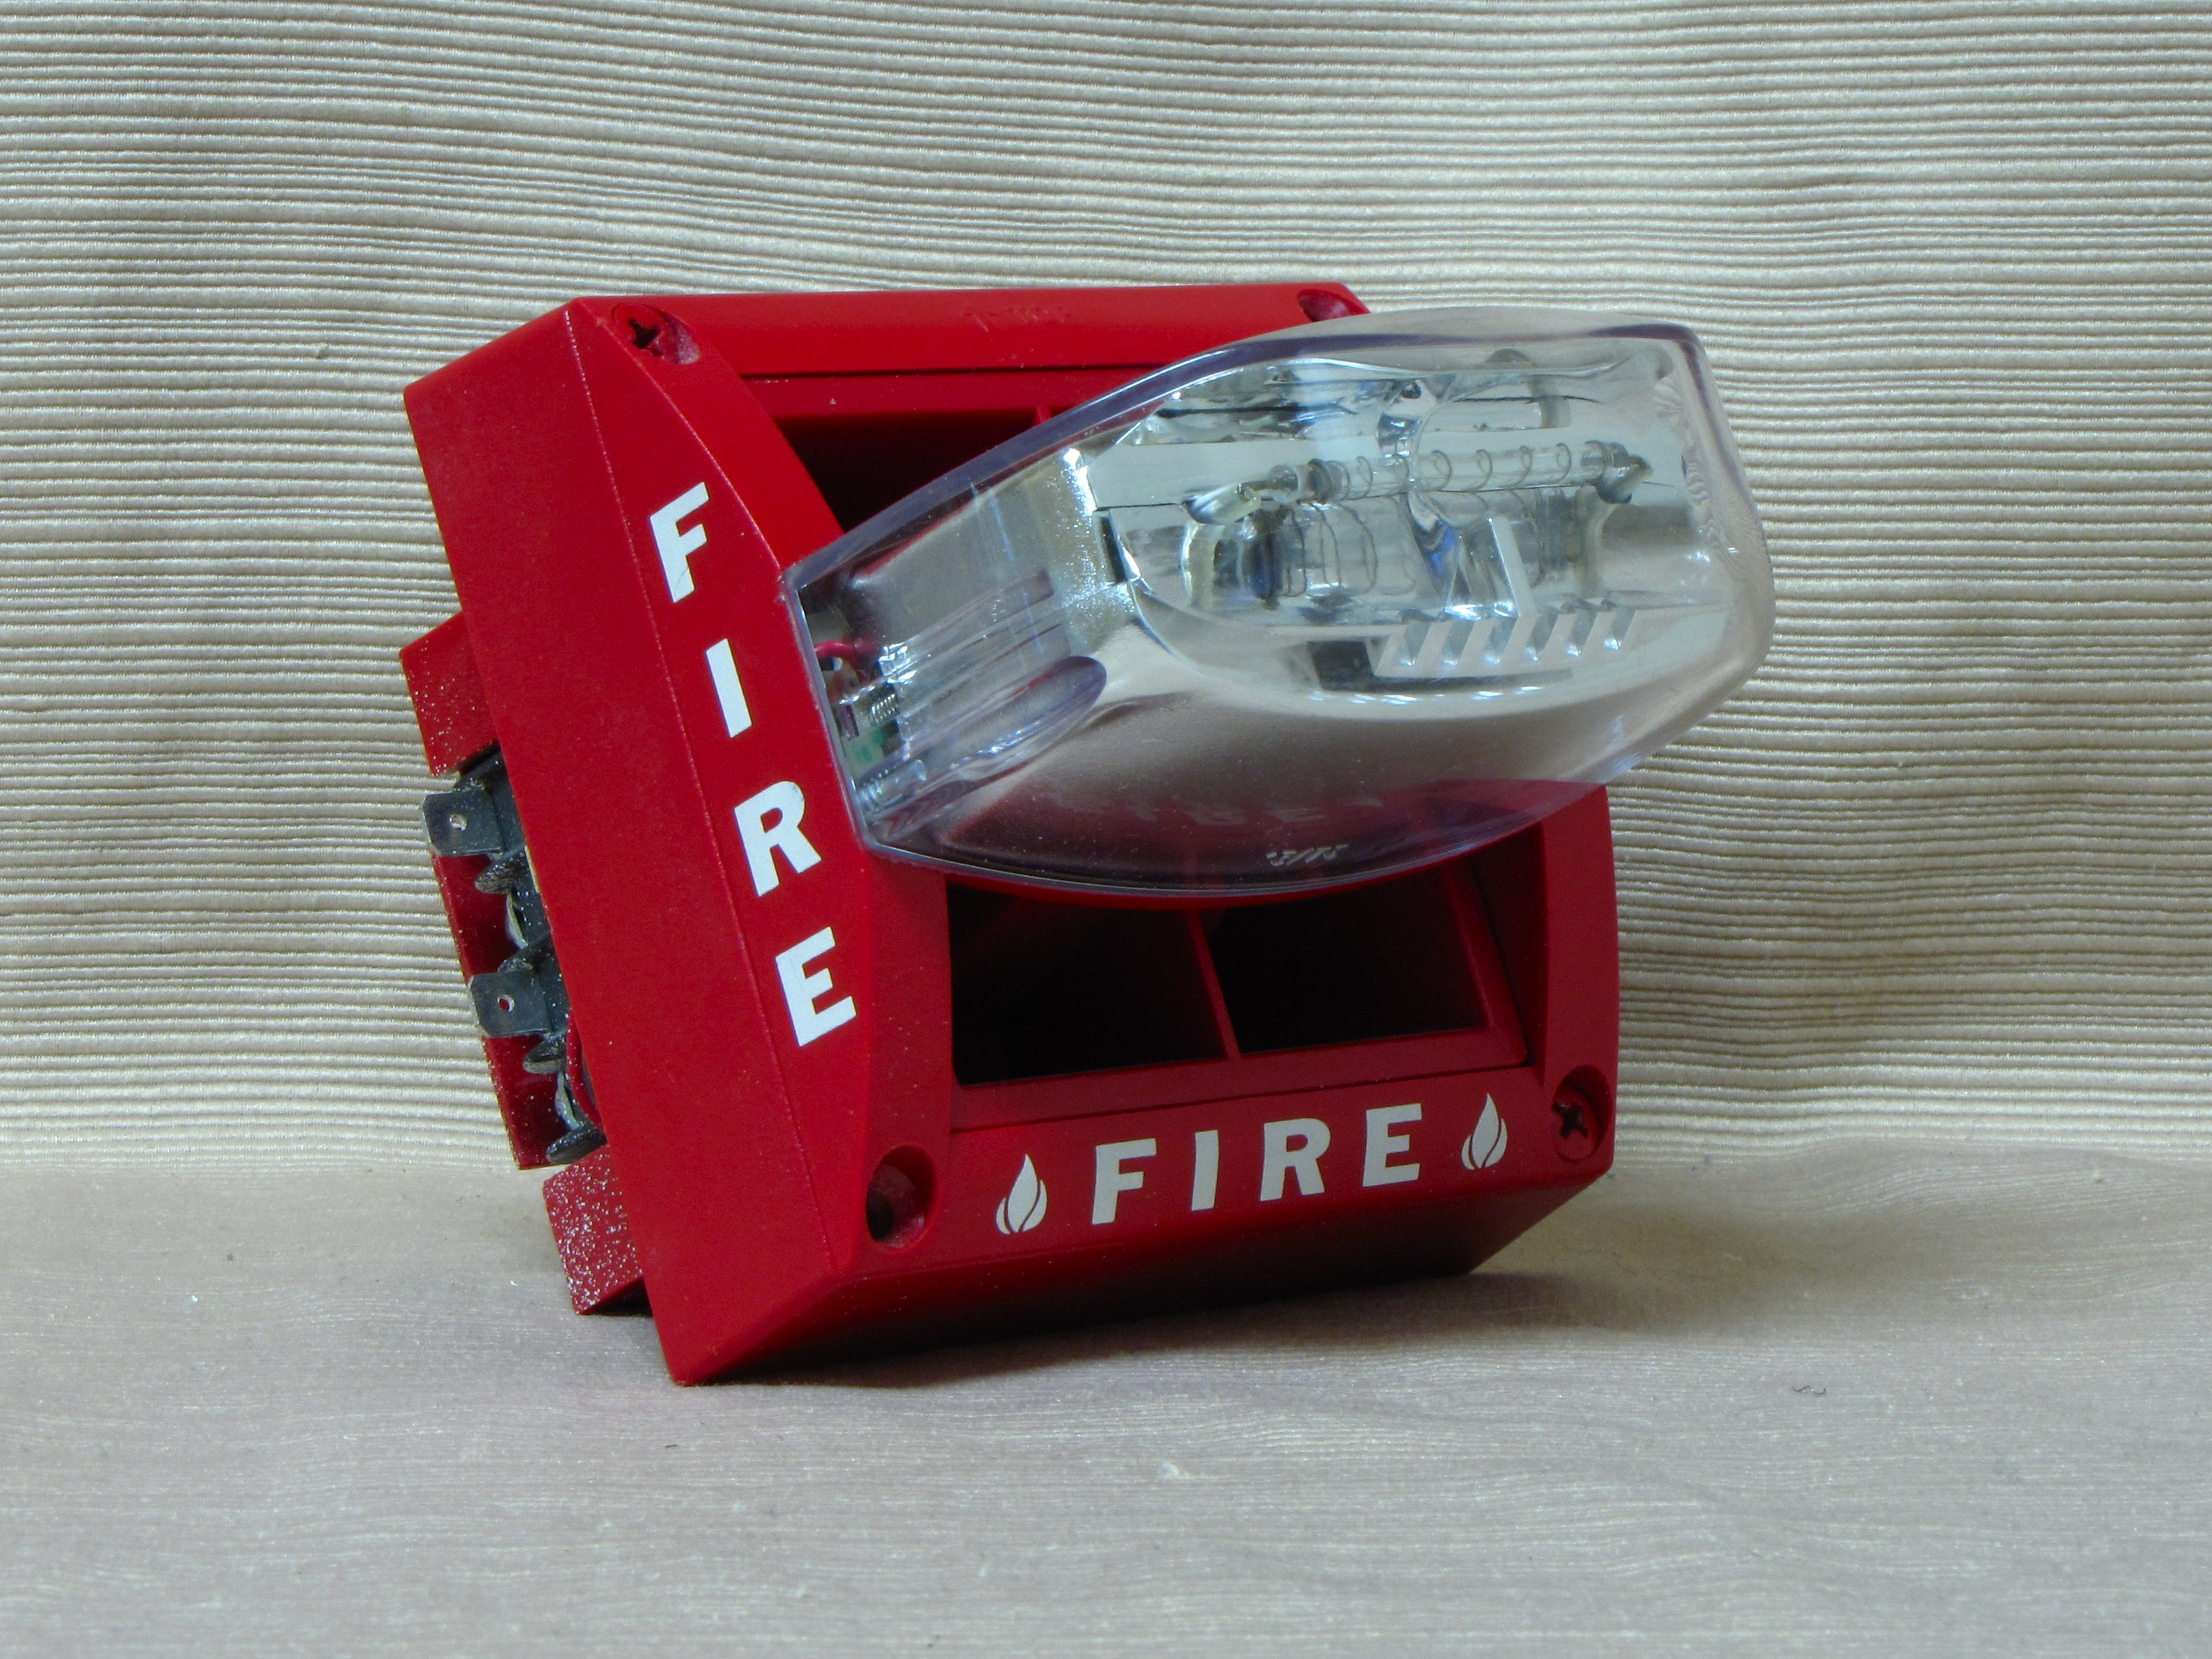 Not Kdmr2 additionally Holdupmenu also P845169 in addition Fire Alarm Control Panel Operations further Legge Ready Cut Key For 157 Mortice Lock R1 R24 159. on fire alarm devices